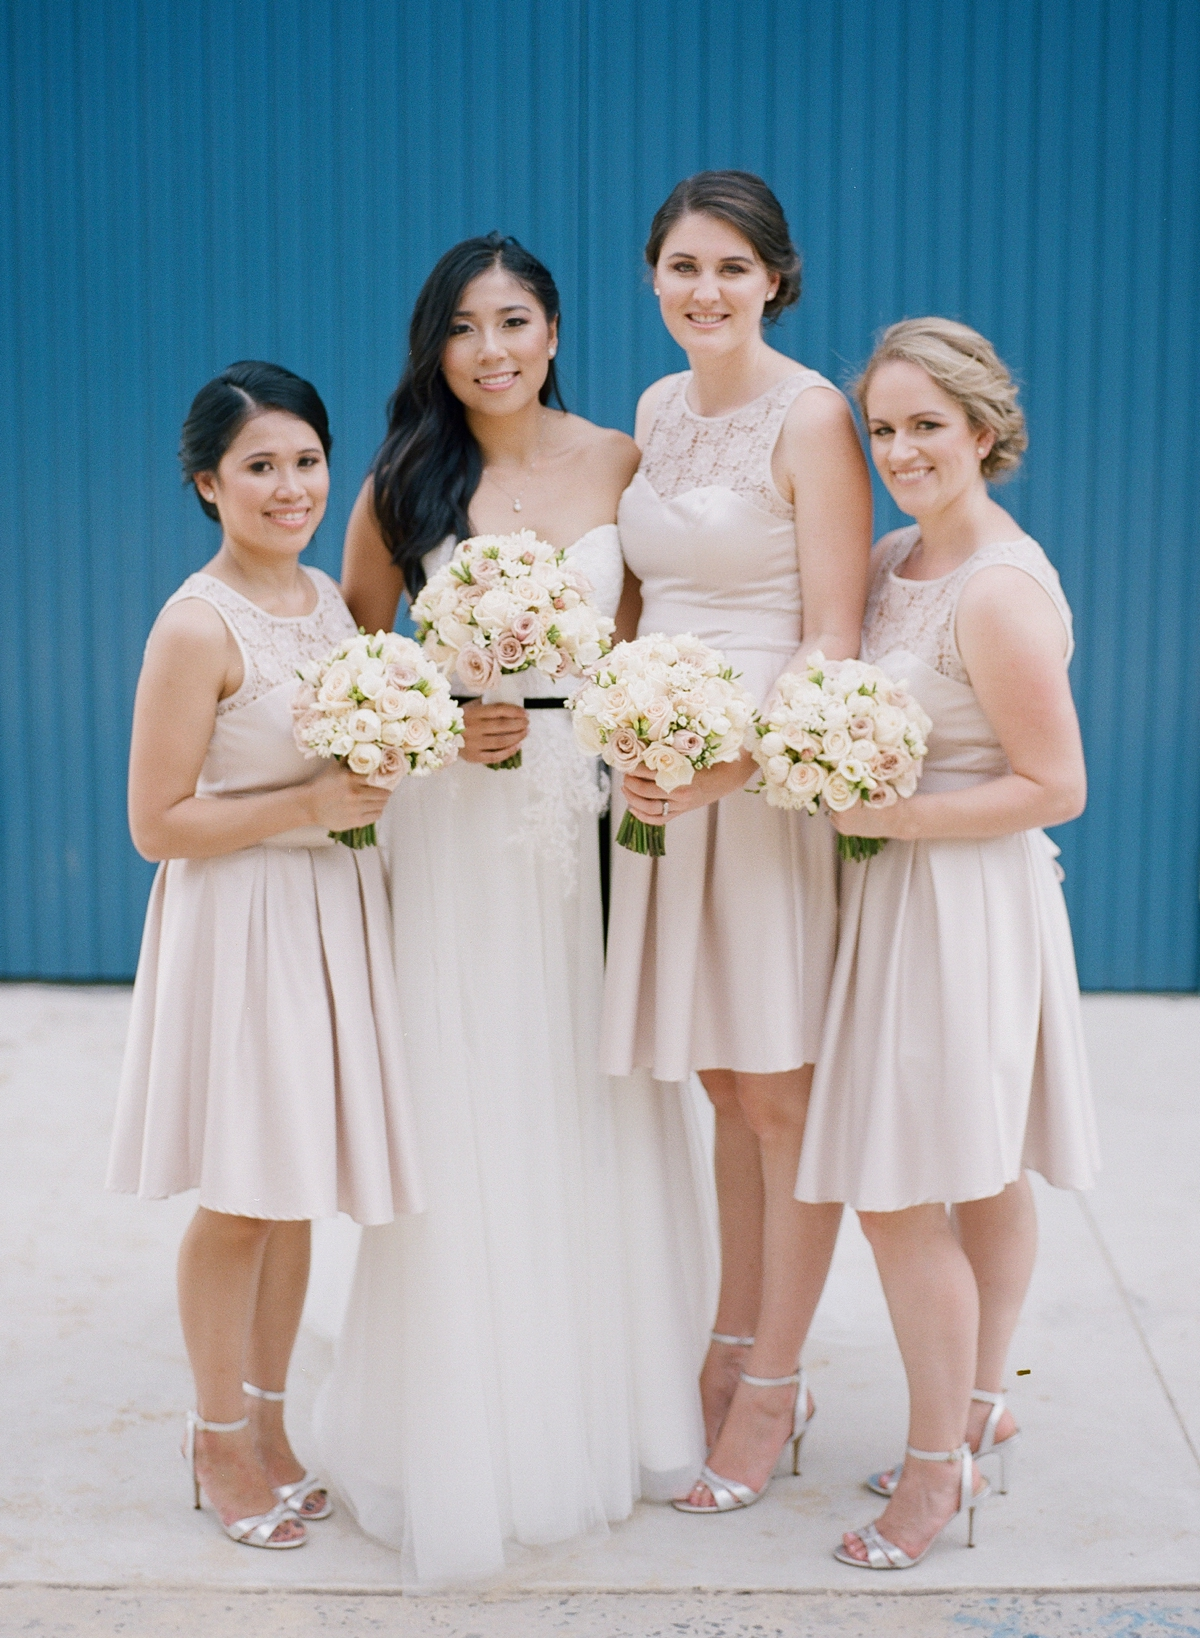 Watsons Bay wedding by Mr Edwards Photography_0737_0996.jpg